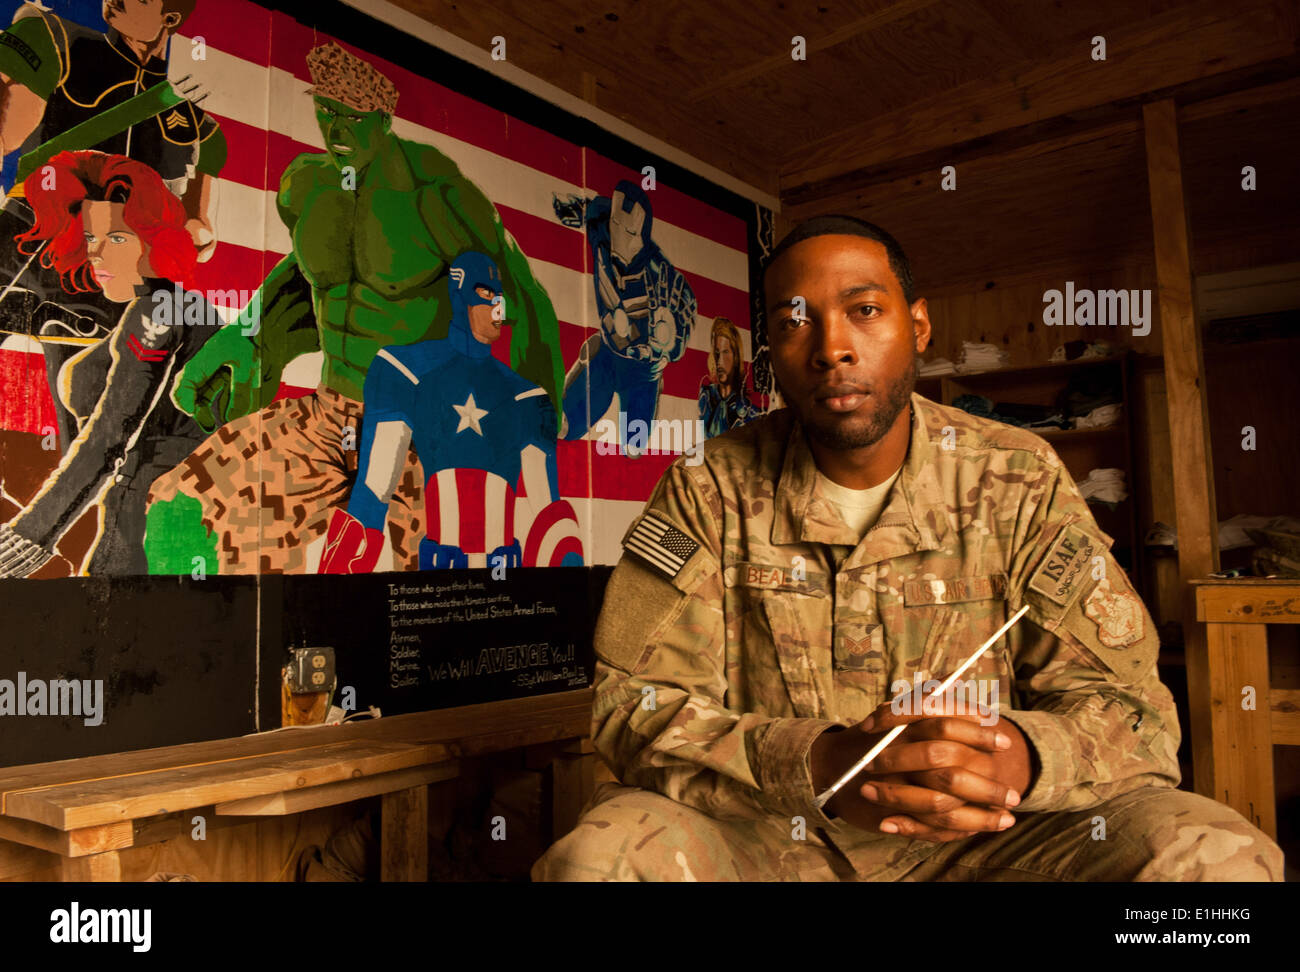 Staff Sgt. William Beal, an Airman assigned to 455th Expeditionary Logistics Readiness Squadron, pauses for a photo after finis Stock Photo